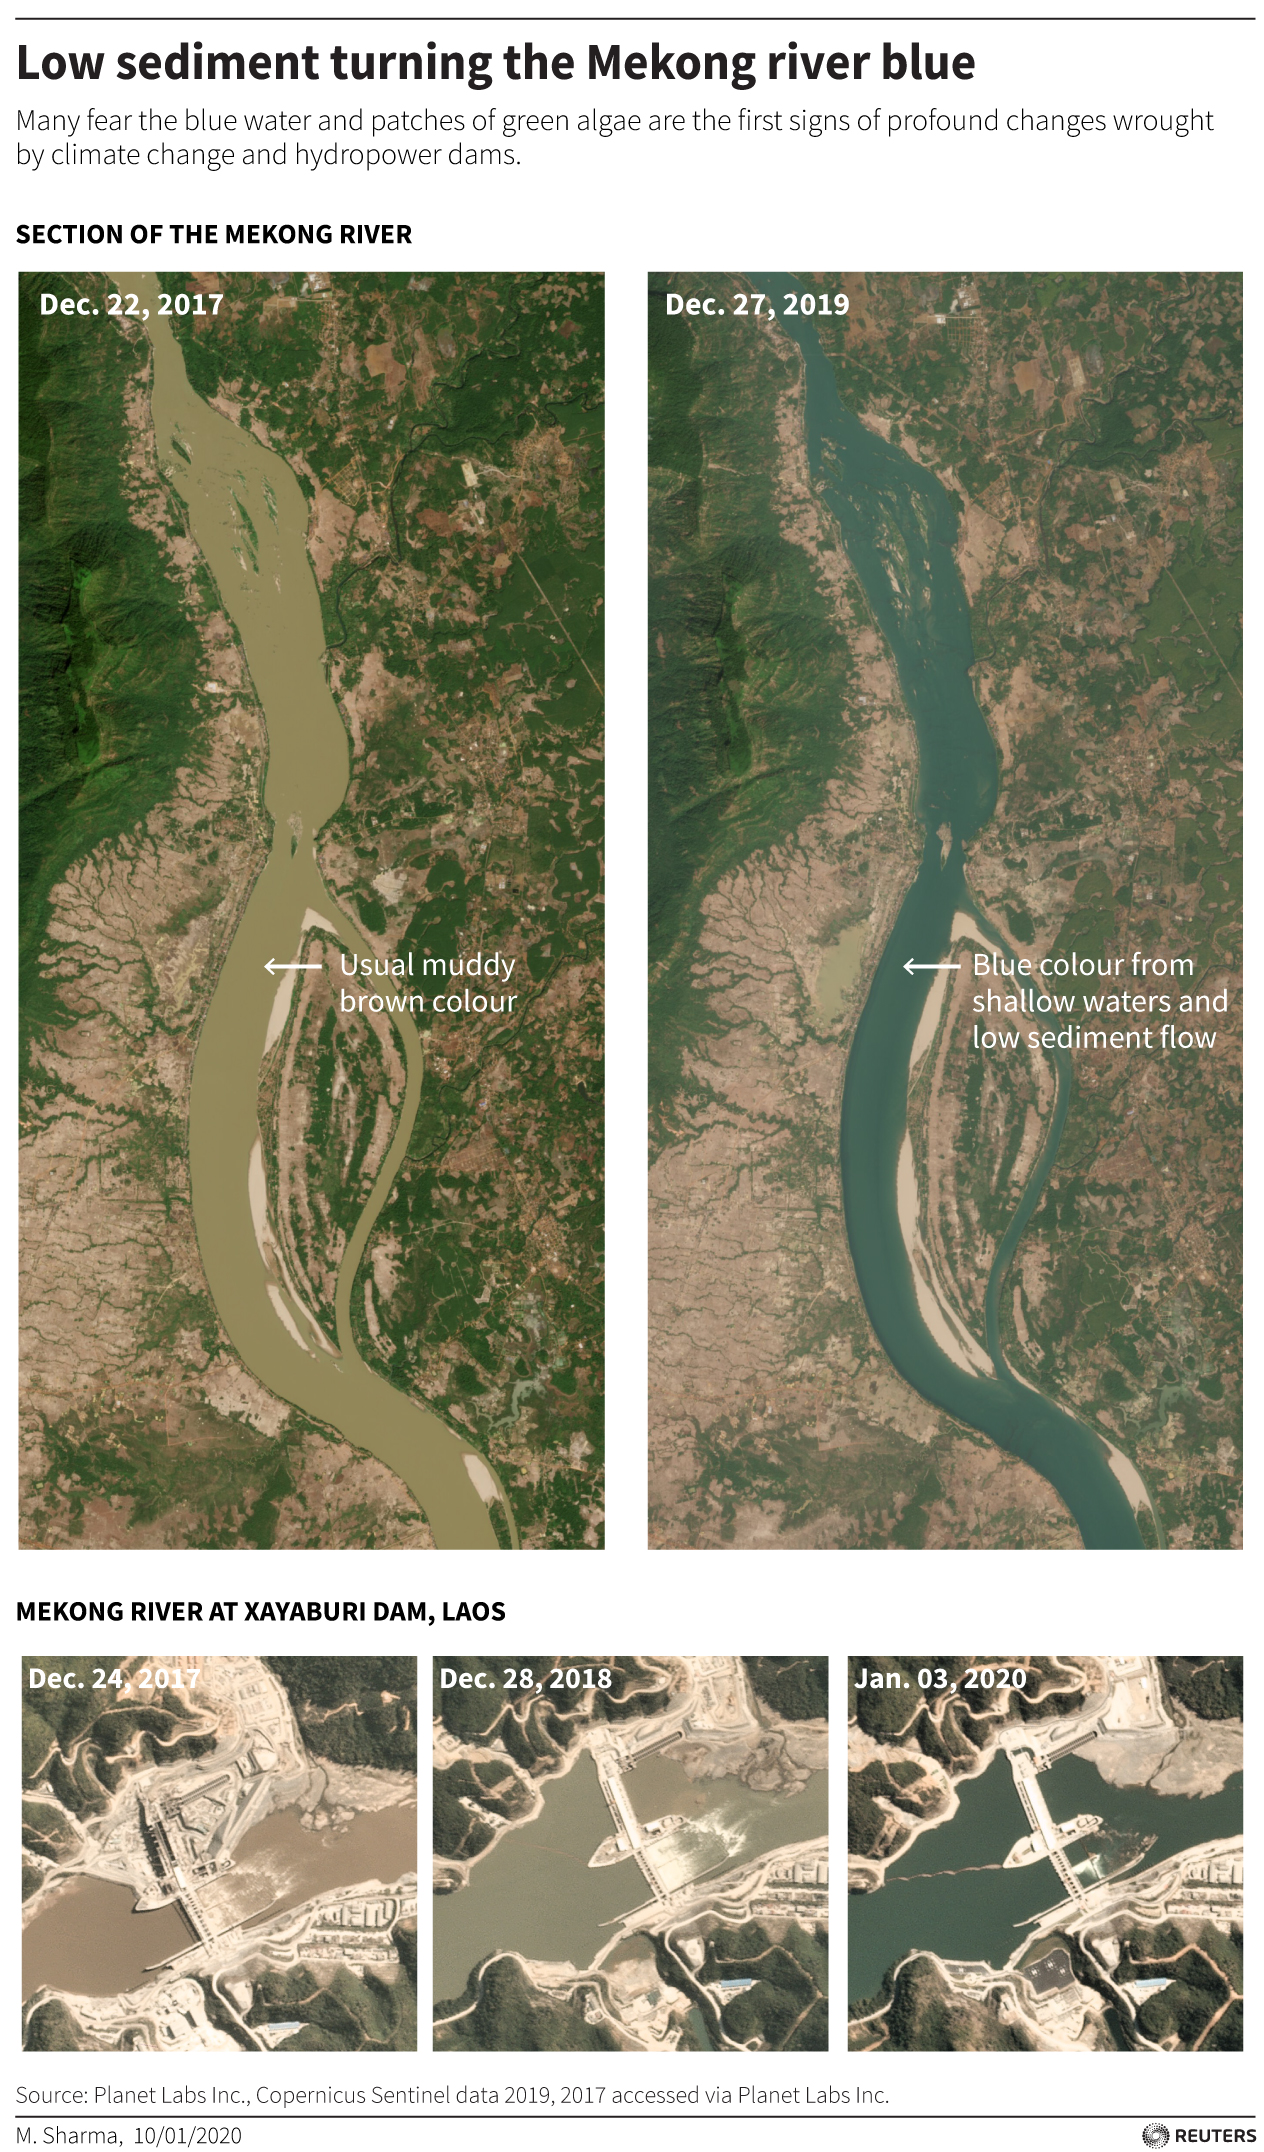 Algae build-up turning the Mekong river blue. Graphic: Reuters